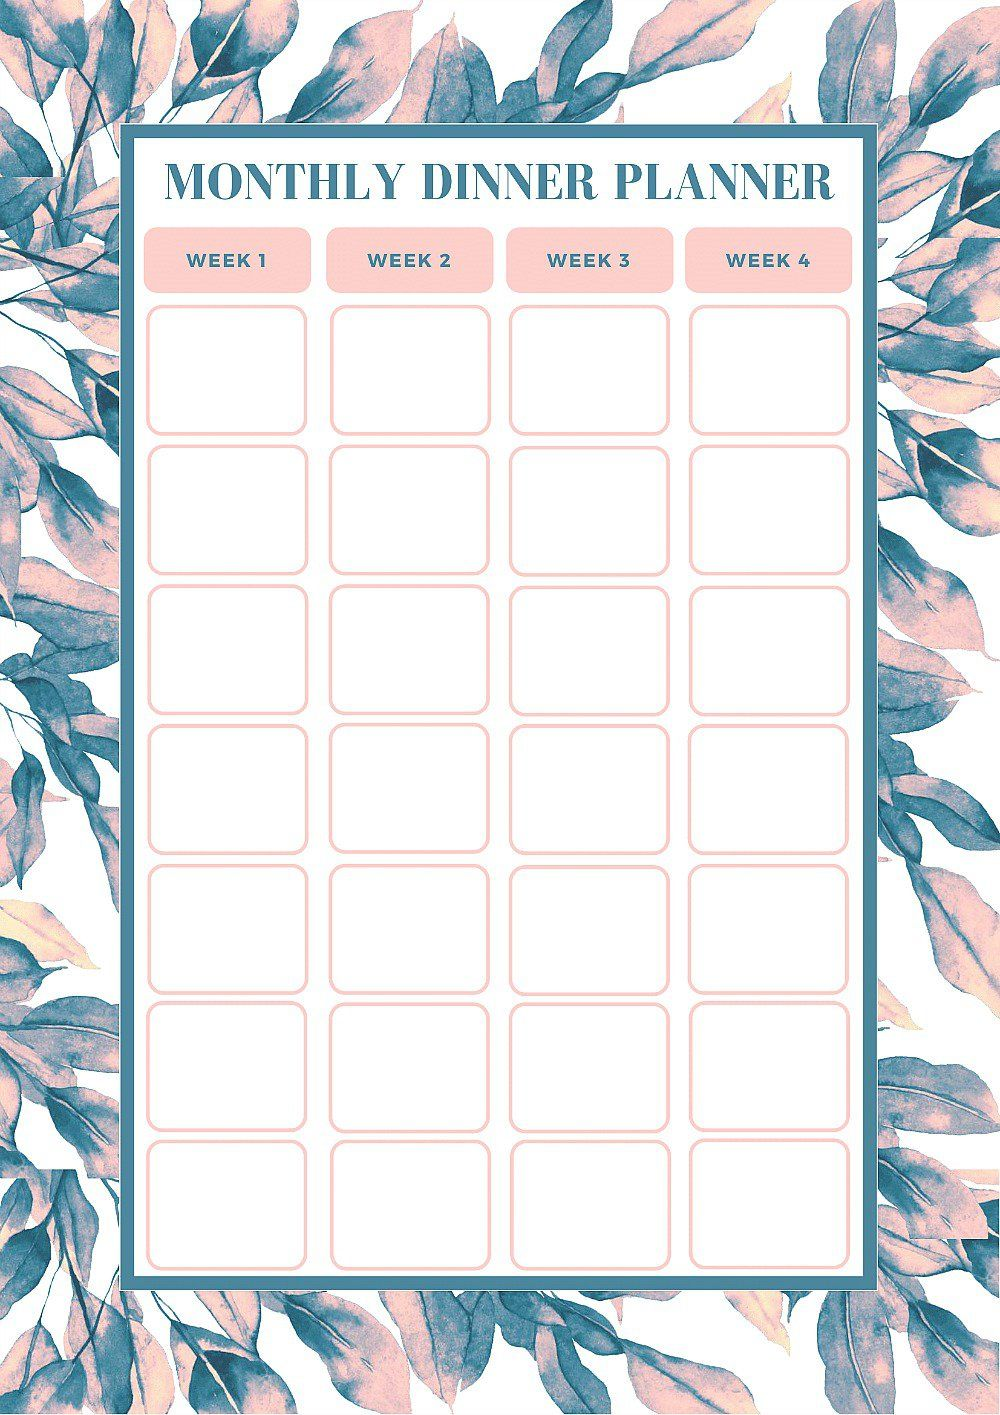 FREE Monthly Meal Planning Template Monthly meal